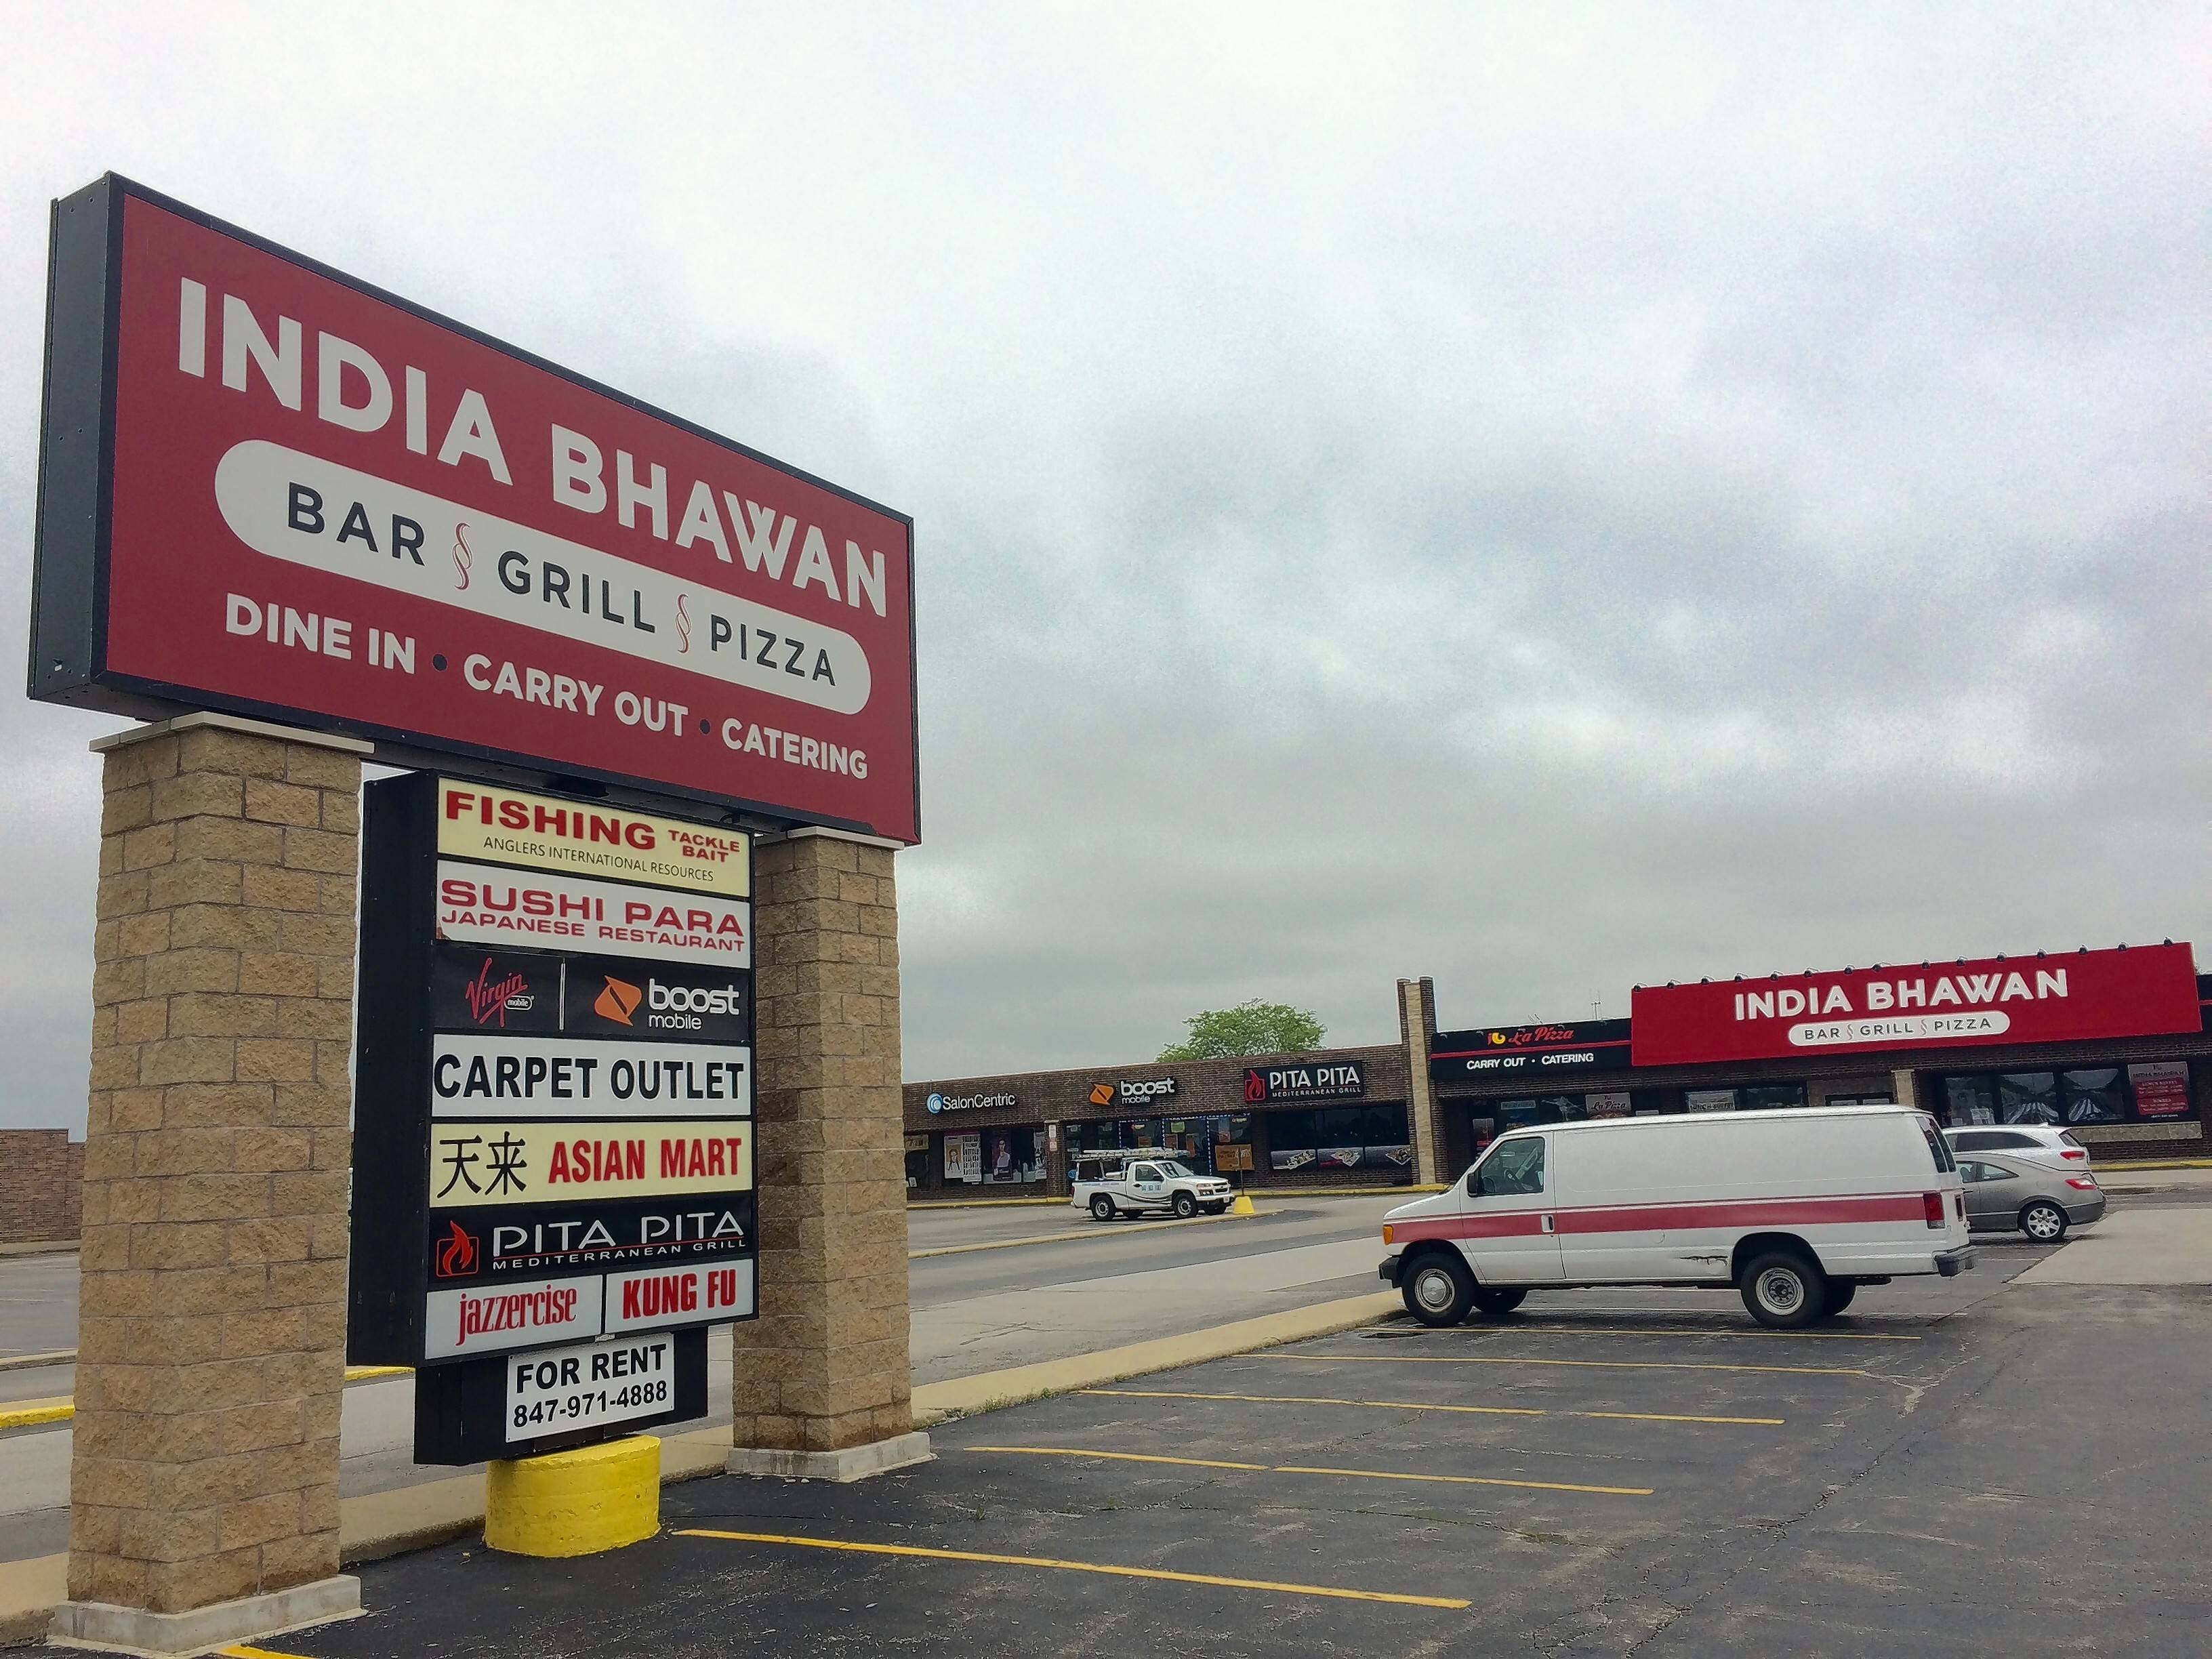 Palatine has allowed the India Bhawan restaurant on Dundee Road to temporarily reopen after submitting a plan to village government addressing alleged code violations over food safety and other issues.